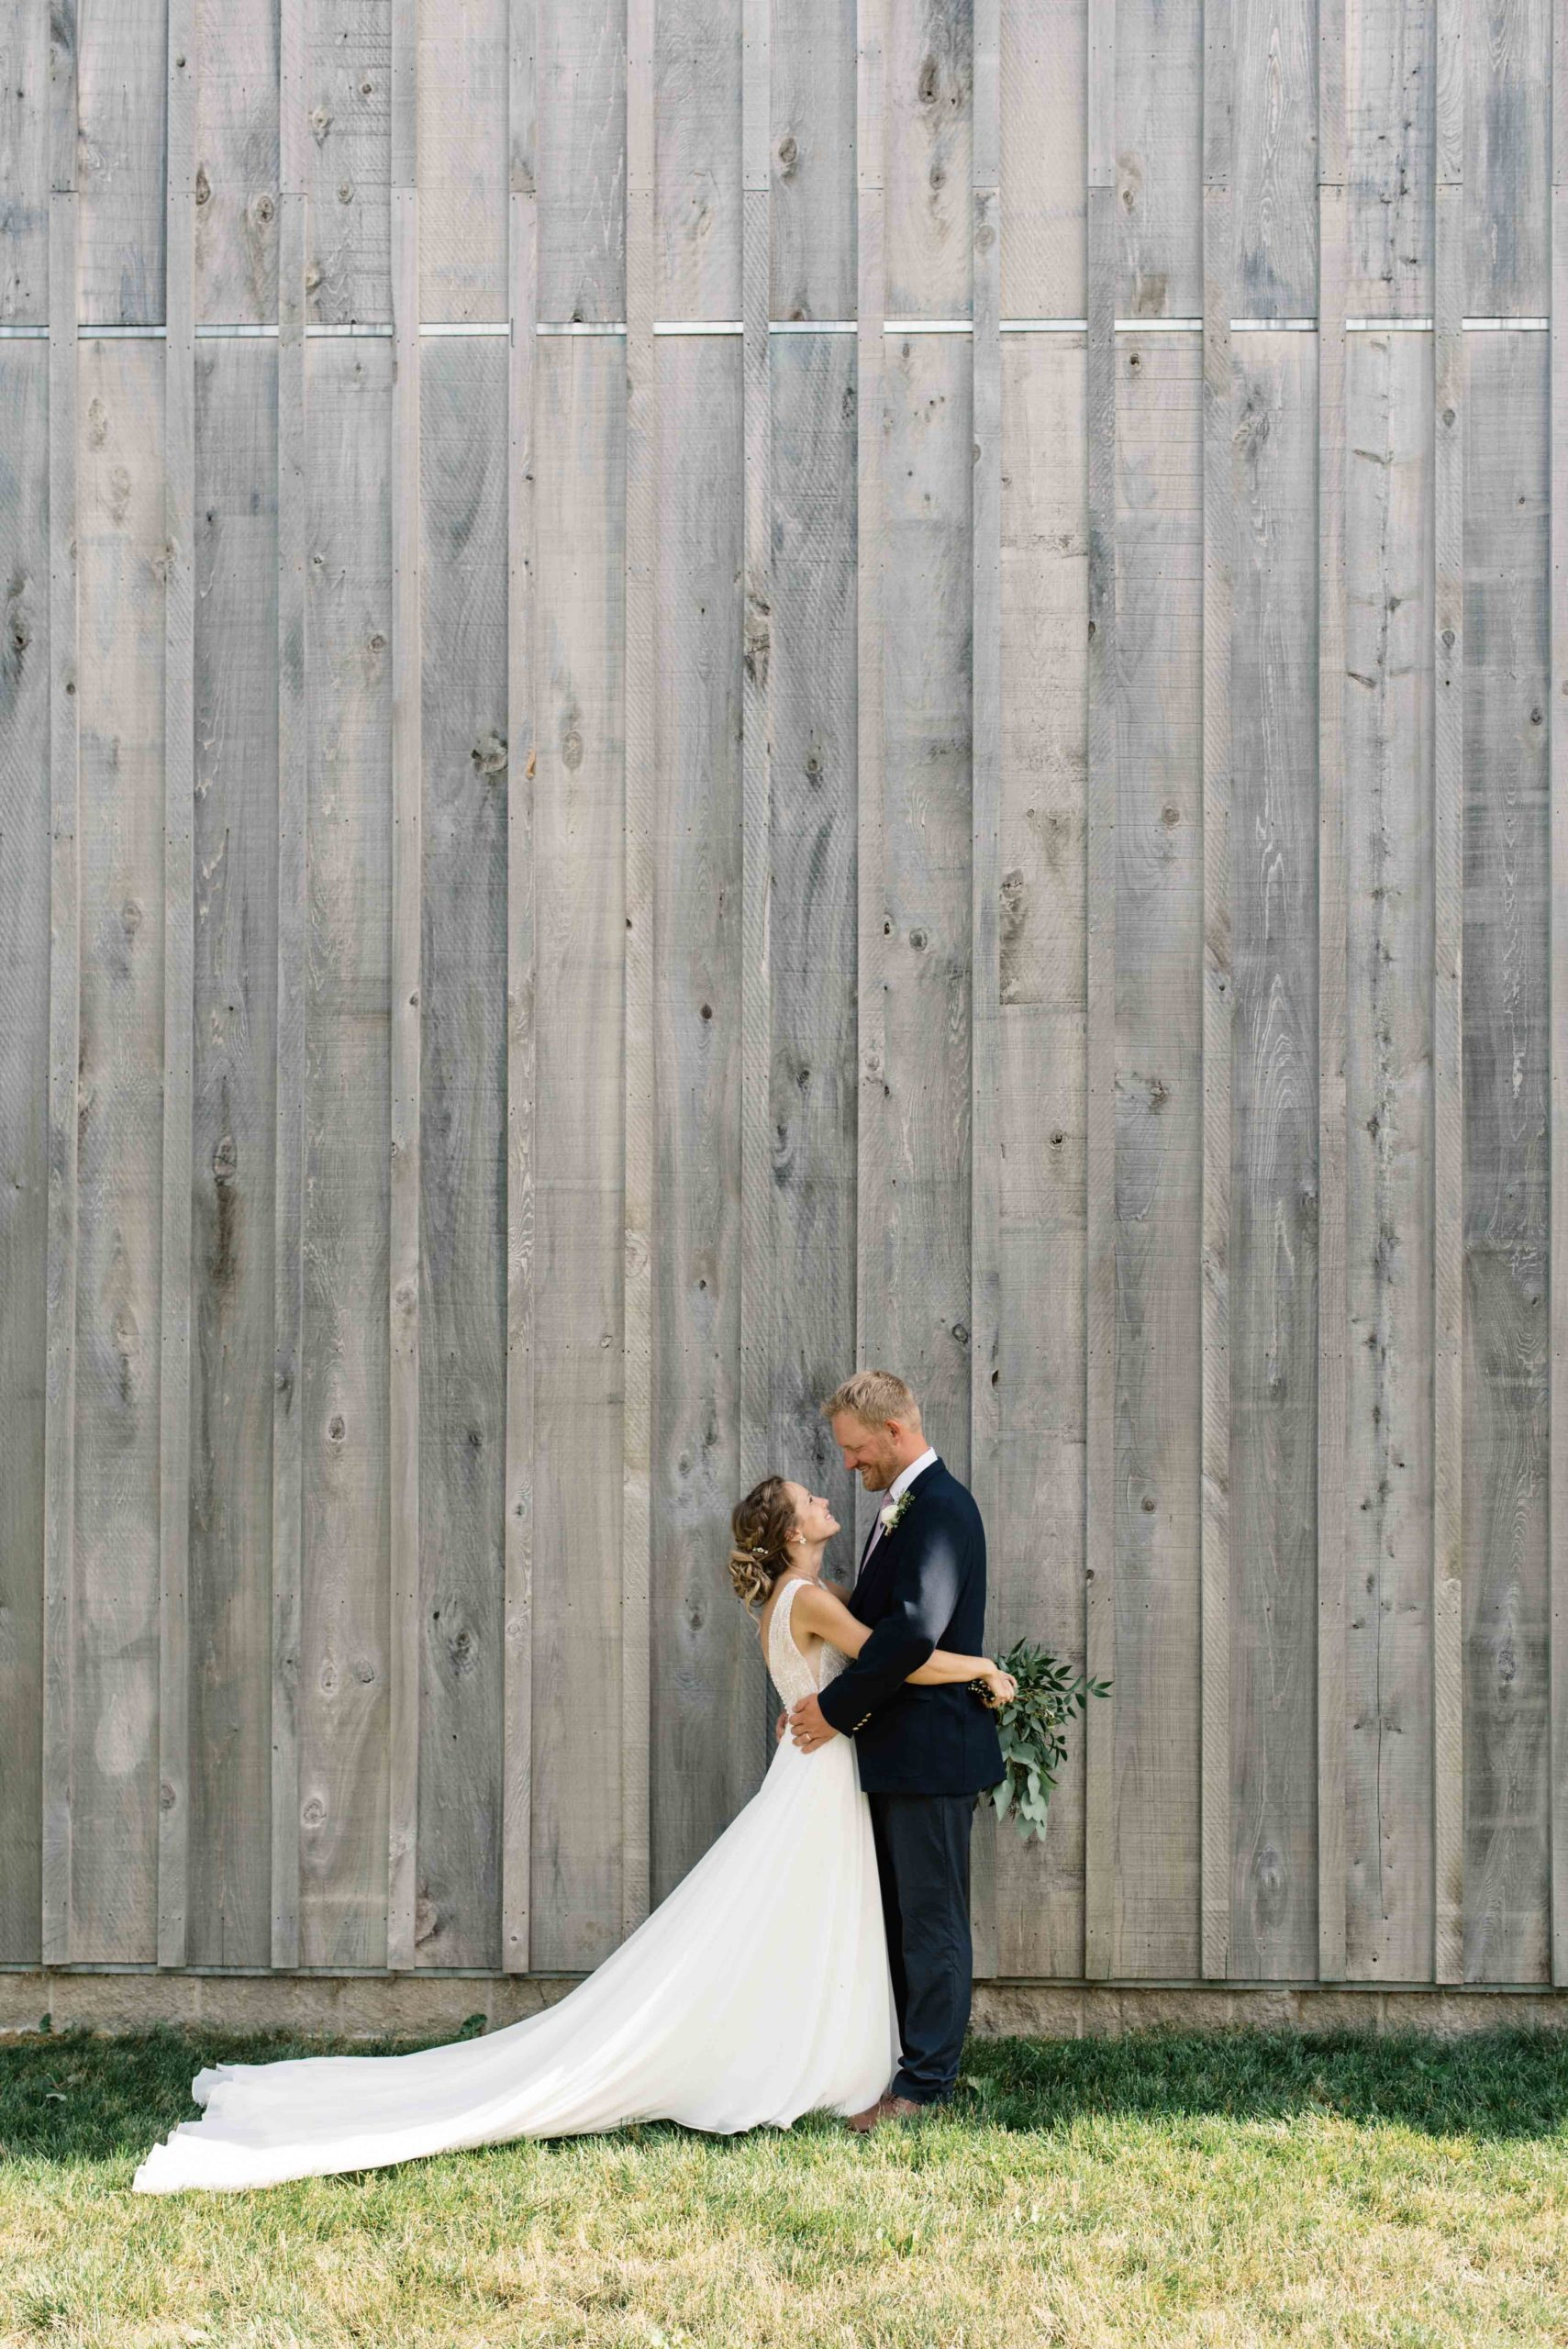 bride and groom in front of gray barn schafer century barn wedding venue